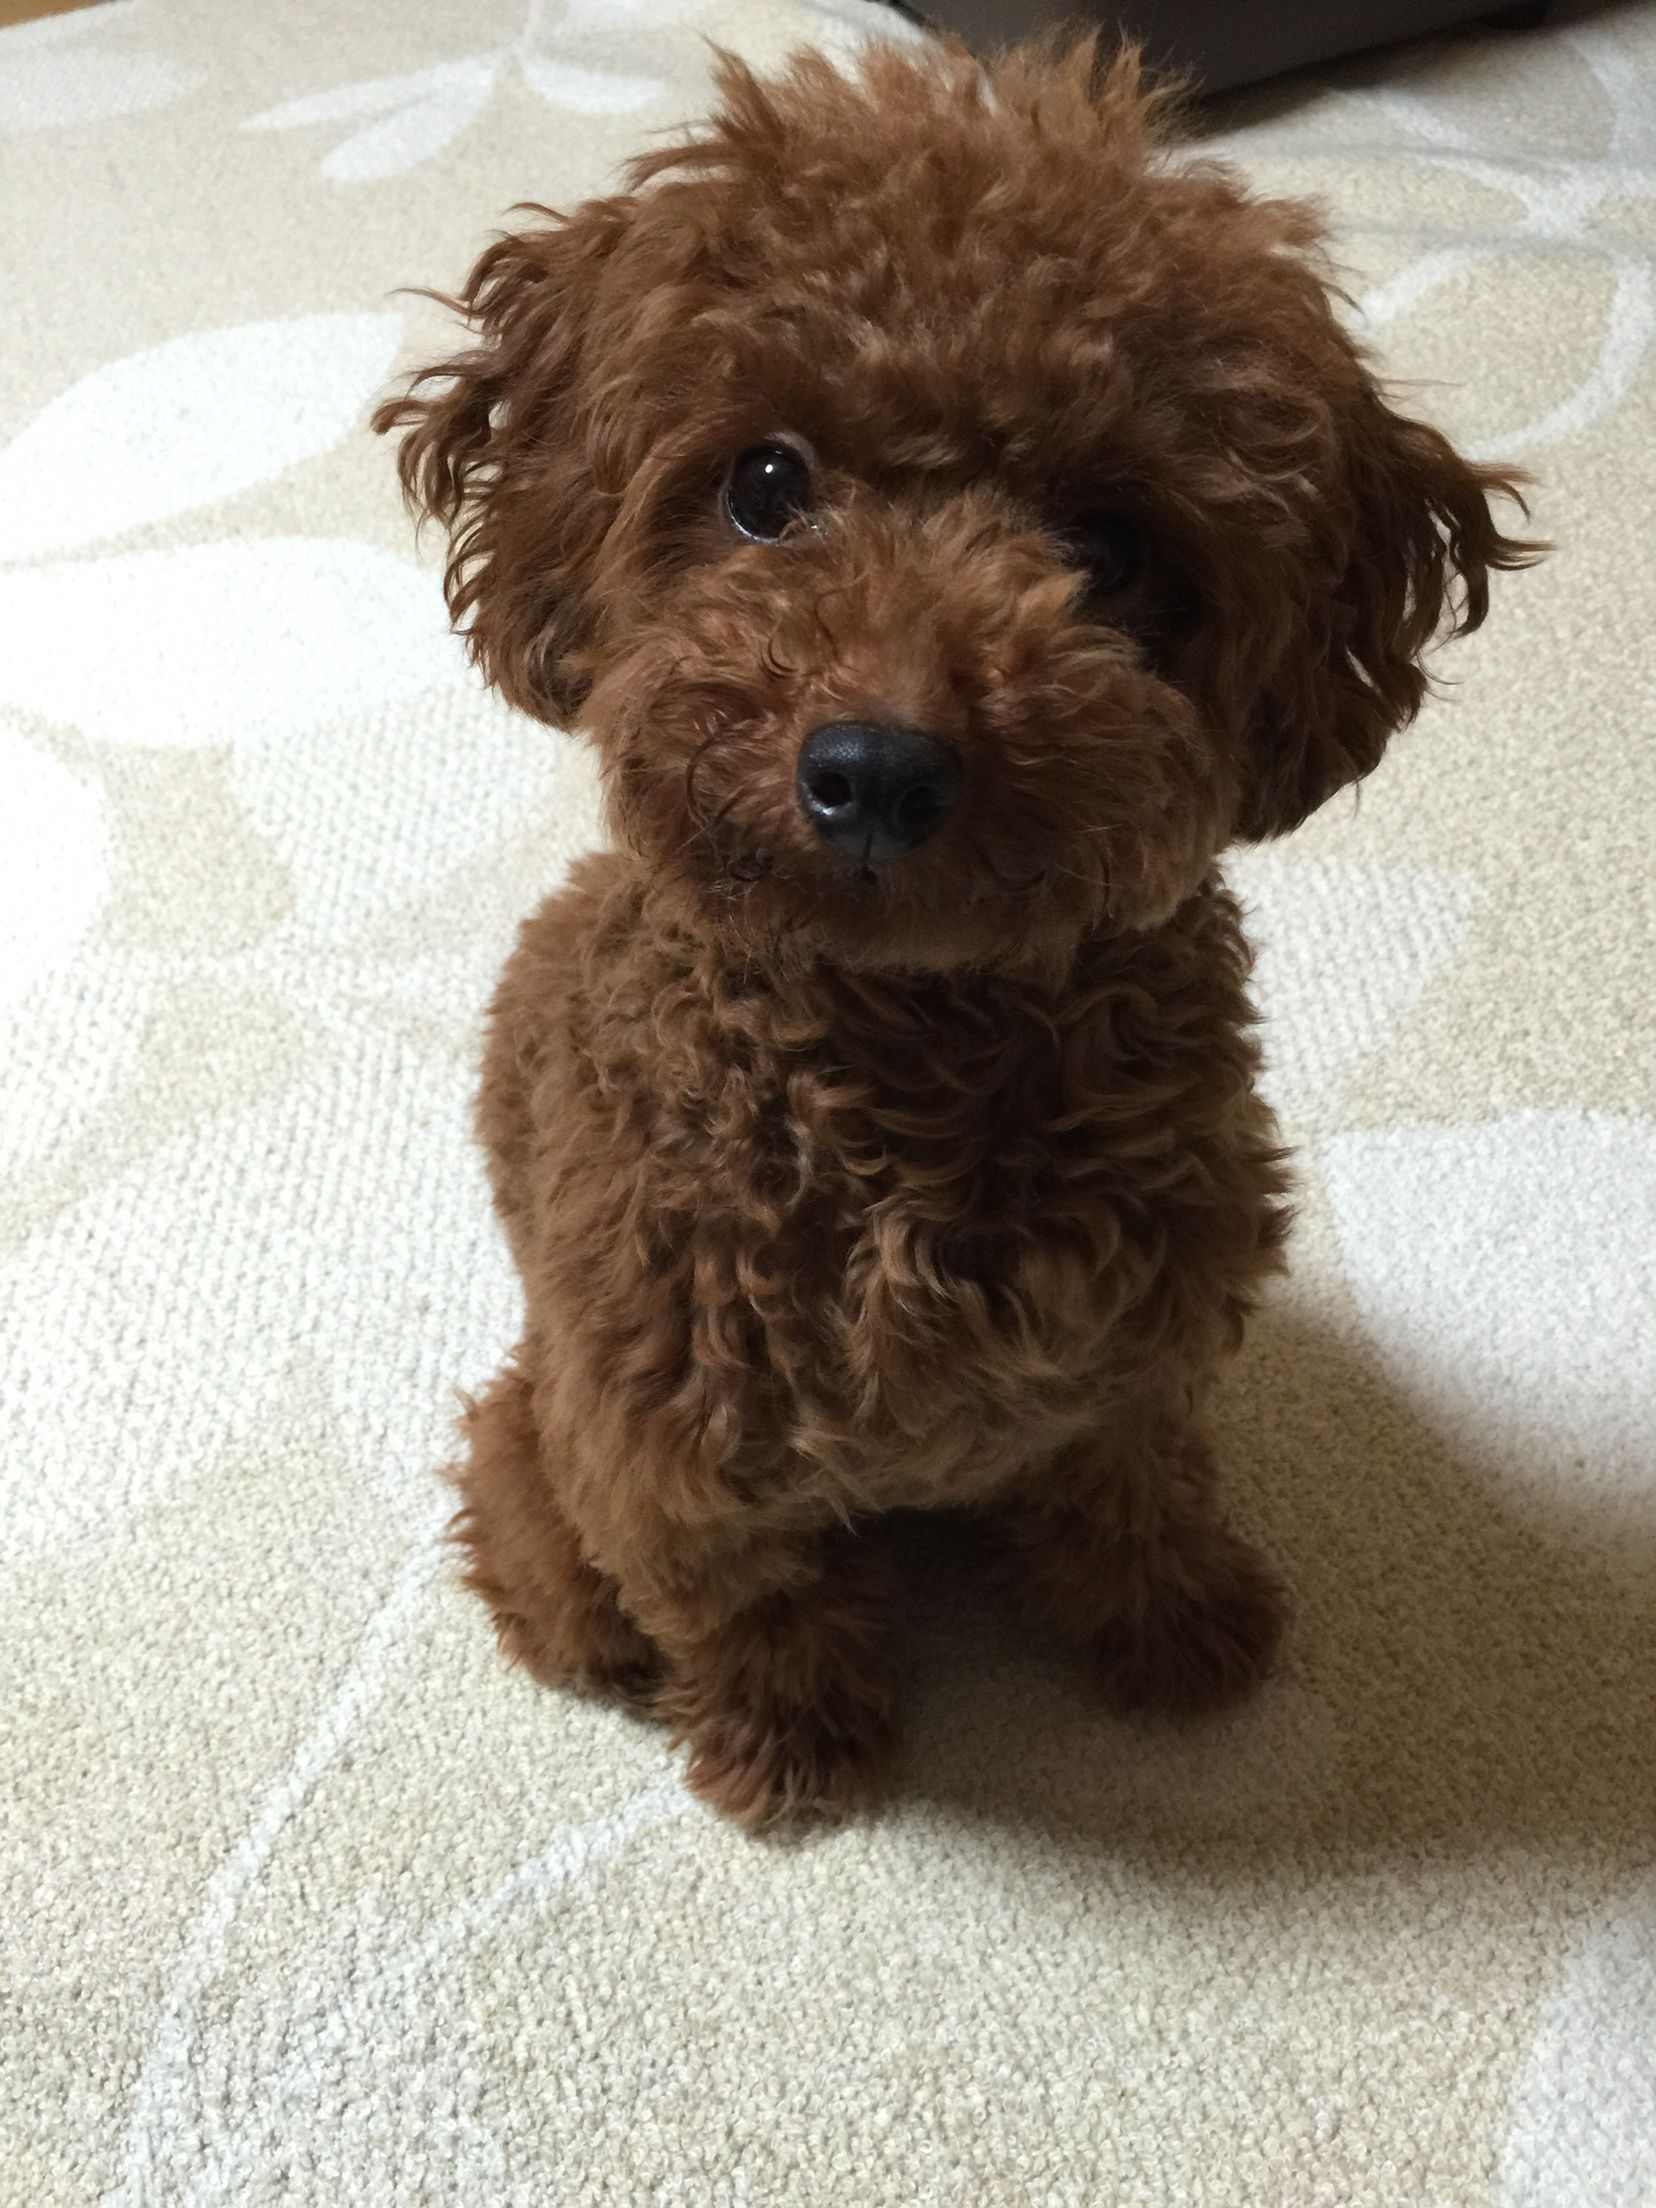 Pin By Terri Borkgren On Poodle 5 Puppies Poodle Animals